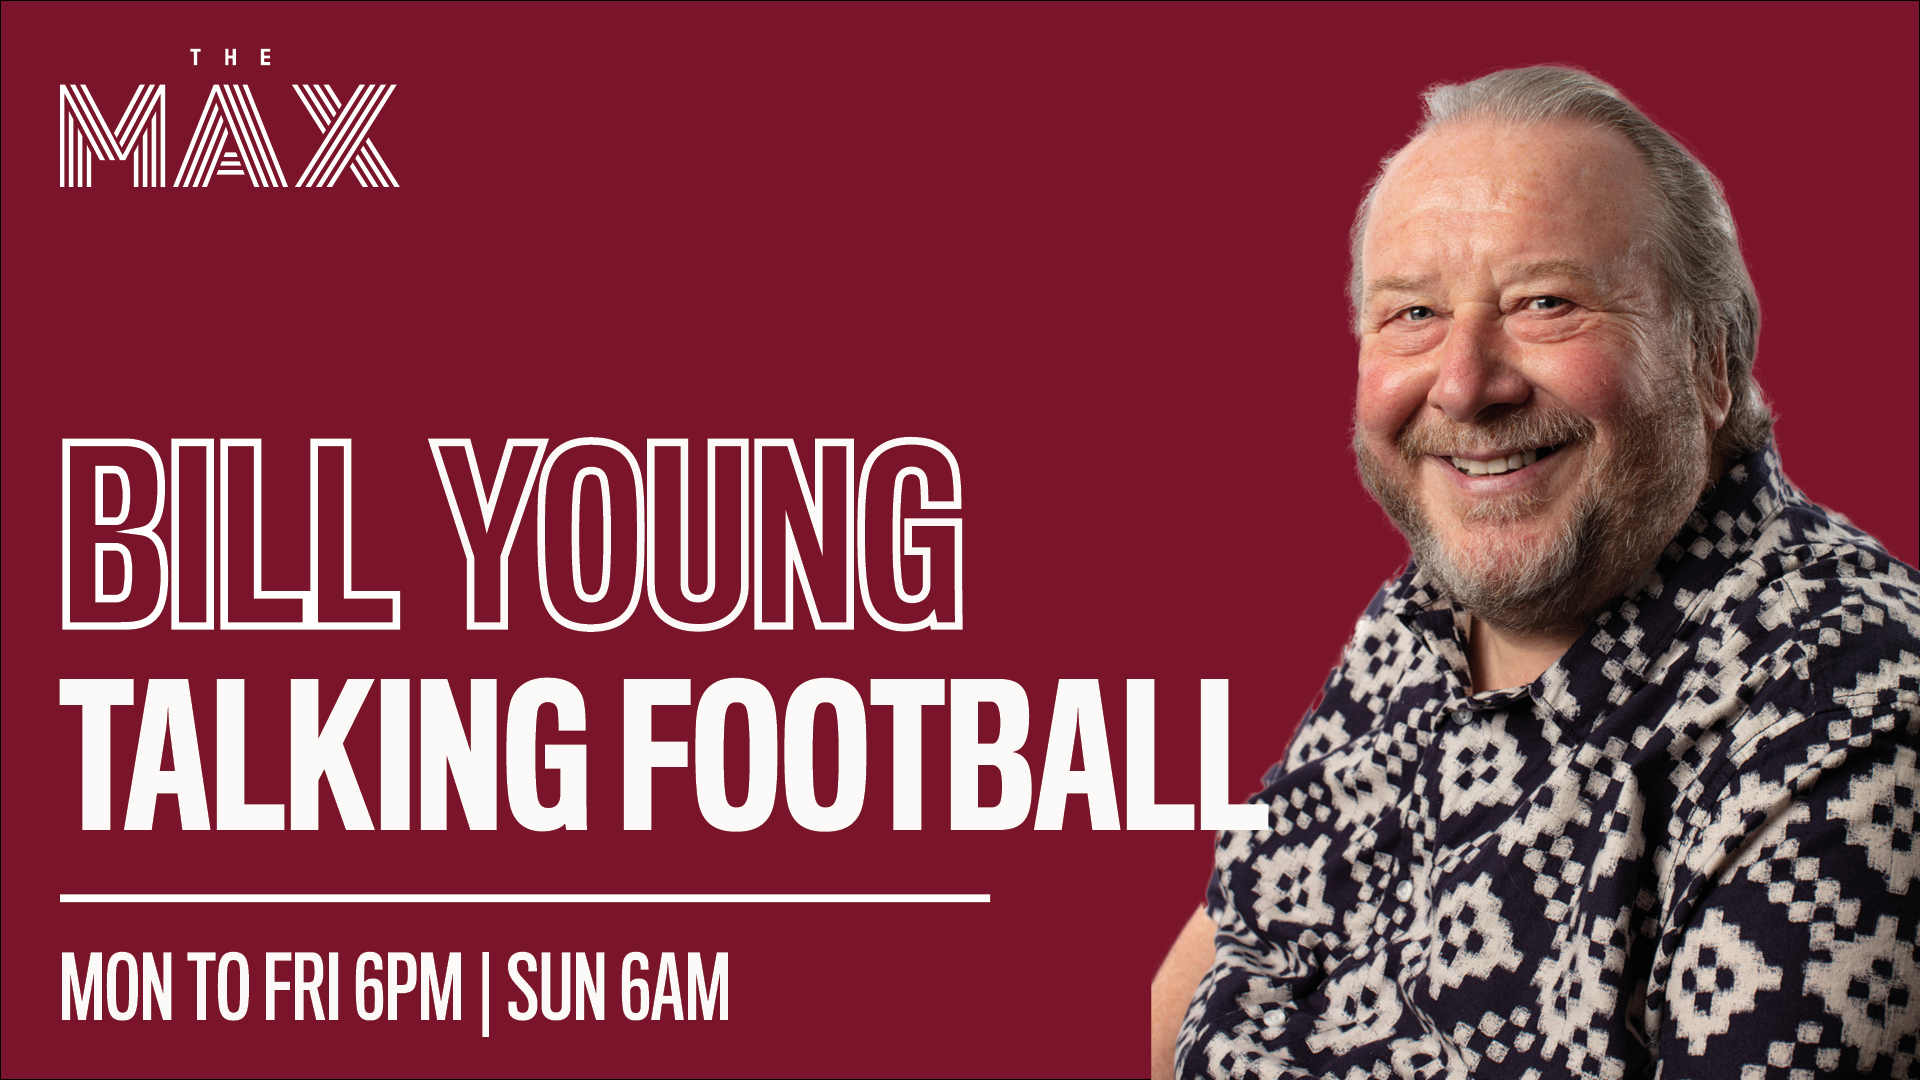 Talking Football with Bill Young - Wednesday 5th May